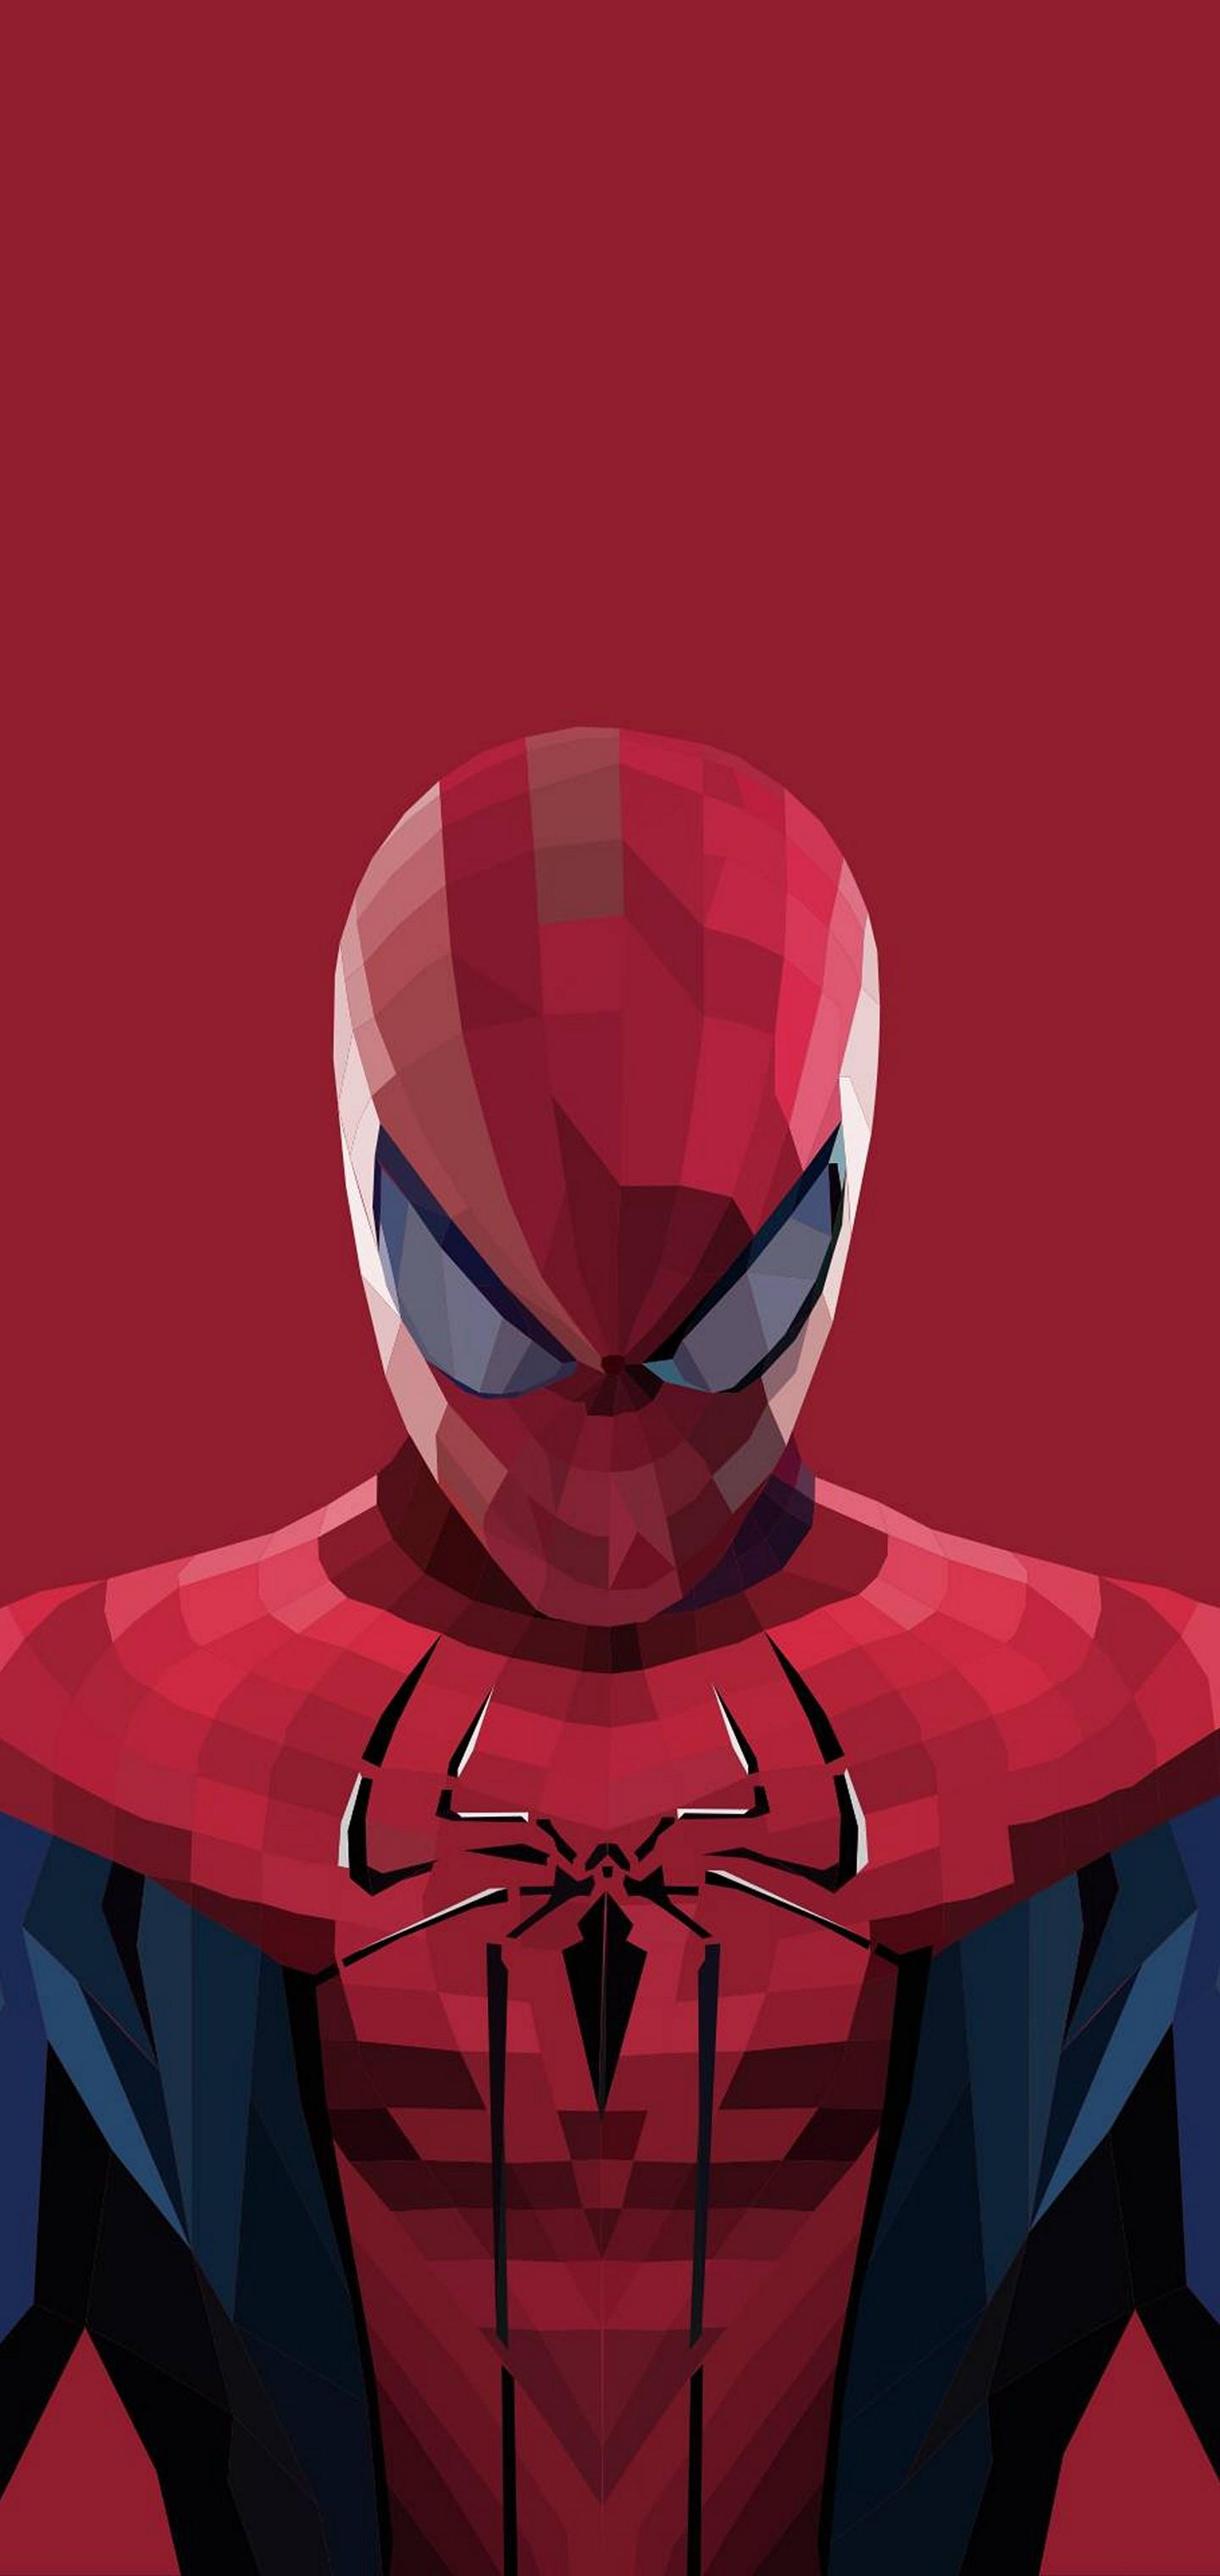 Superhero Spiderman Cartoon Wallpapers